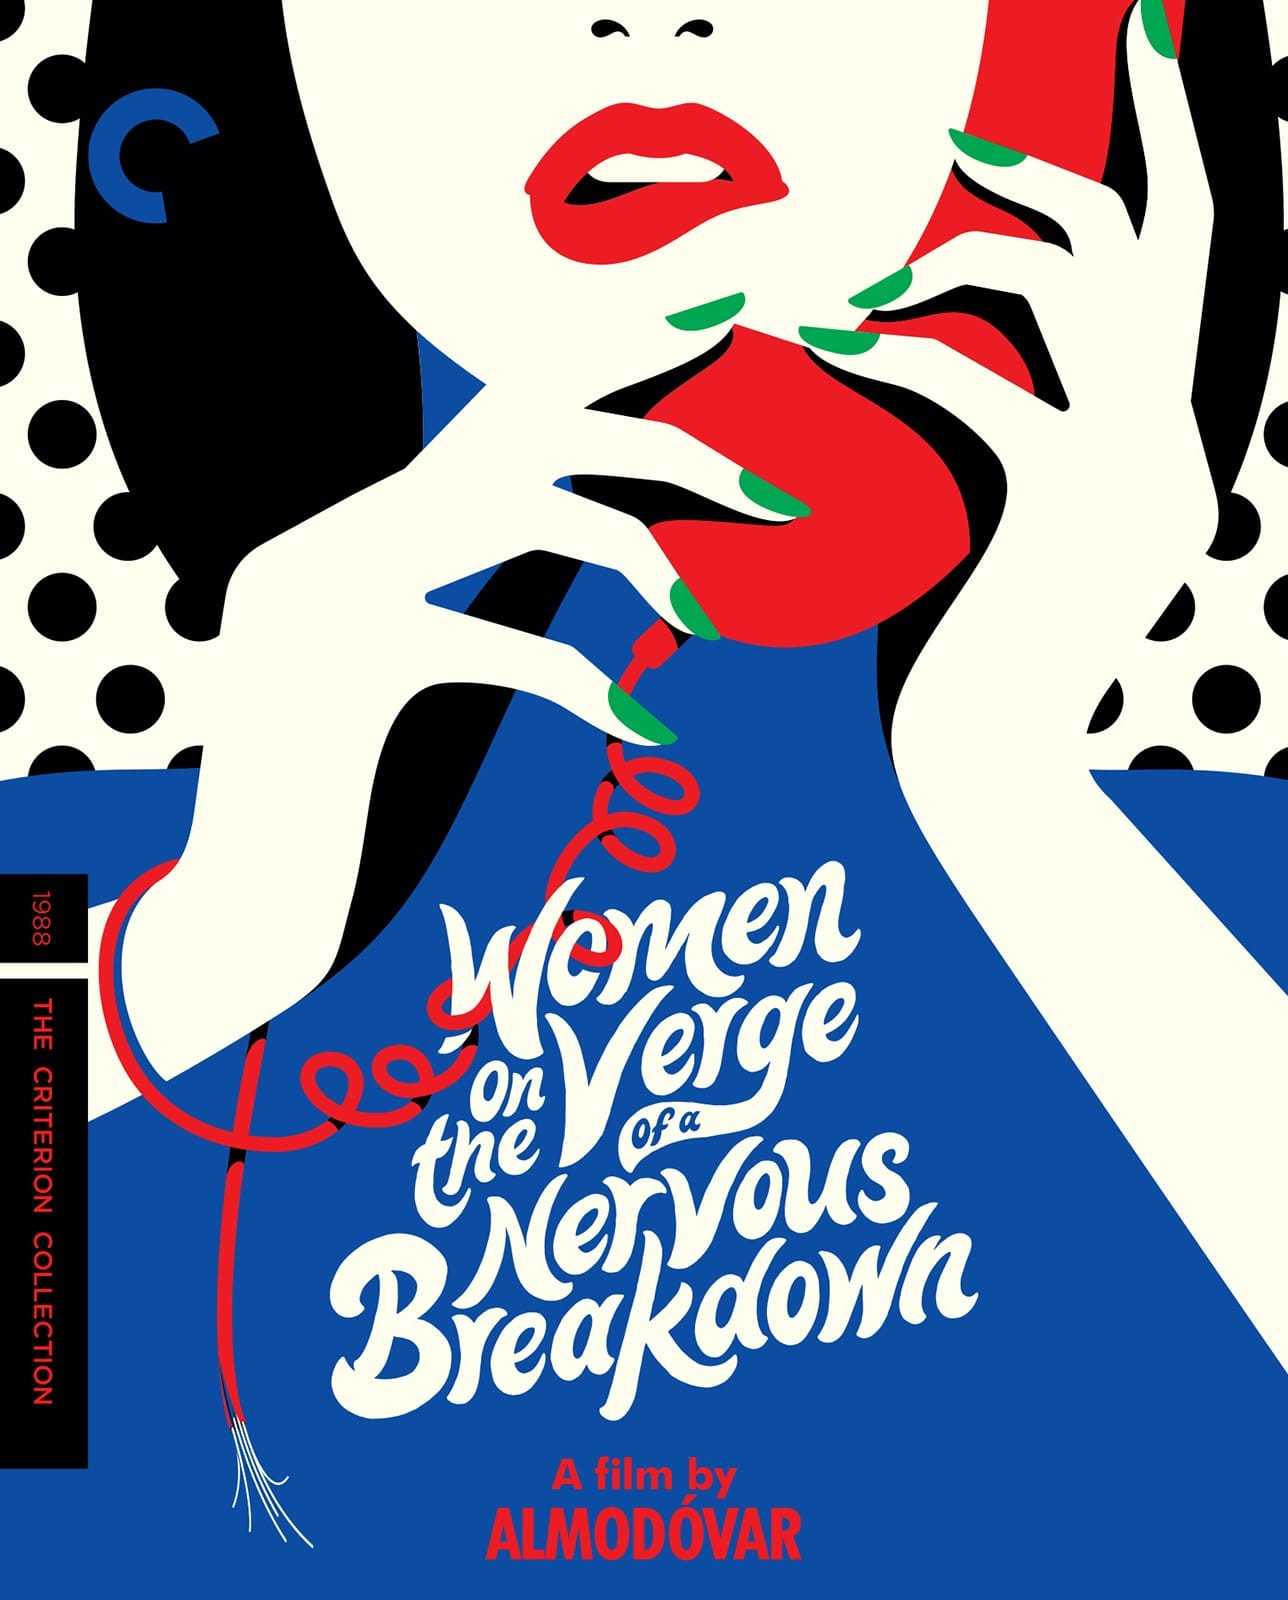 hight resolution of women on the verge of a nervous breakdown